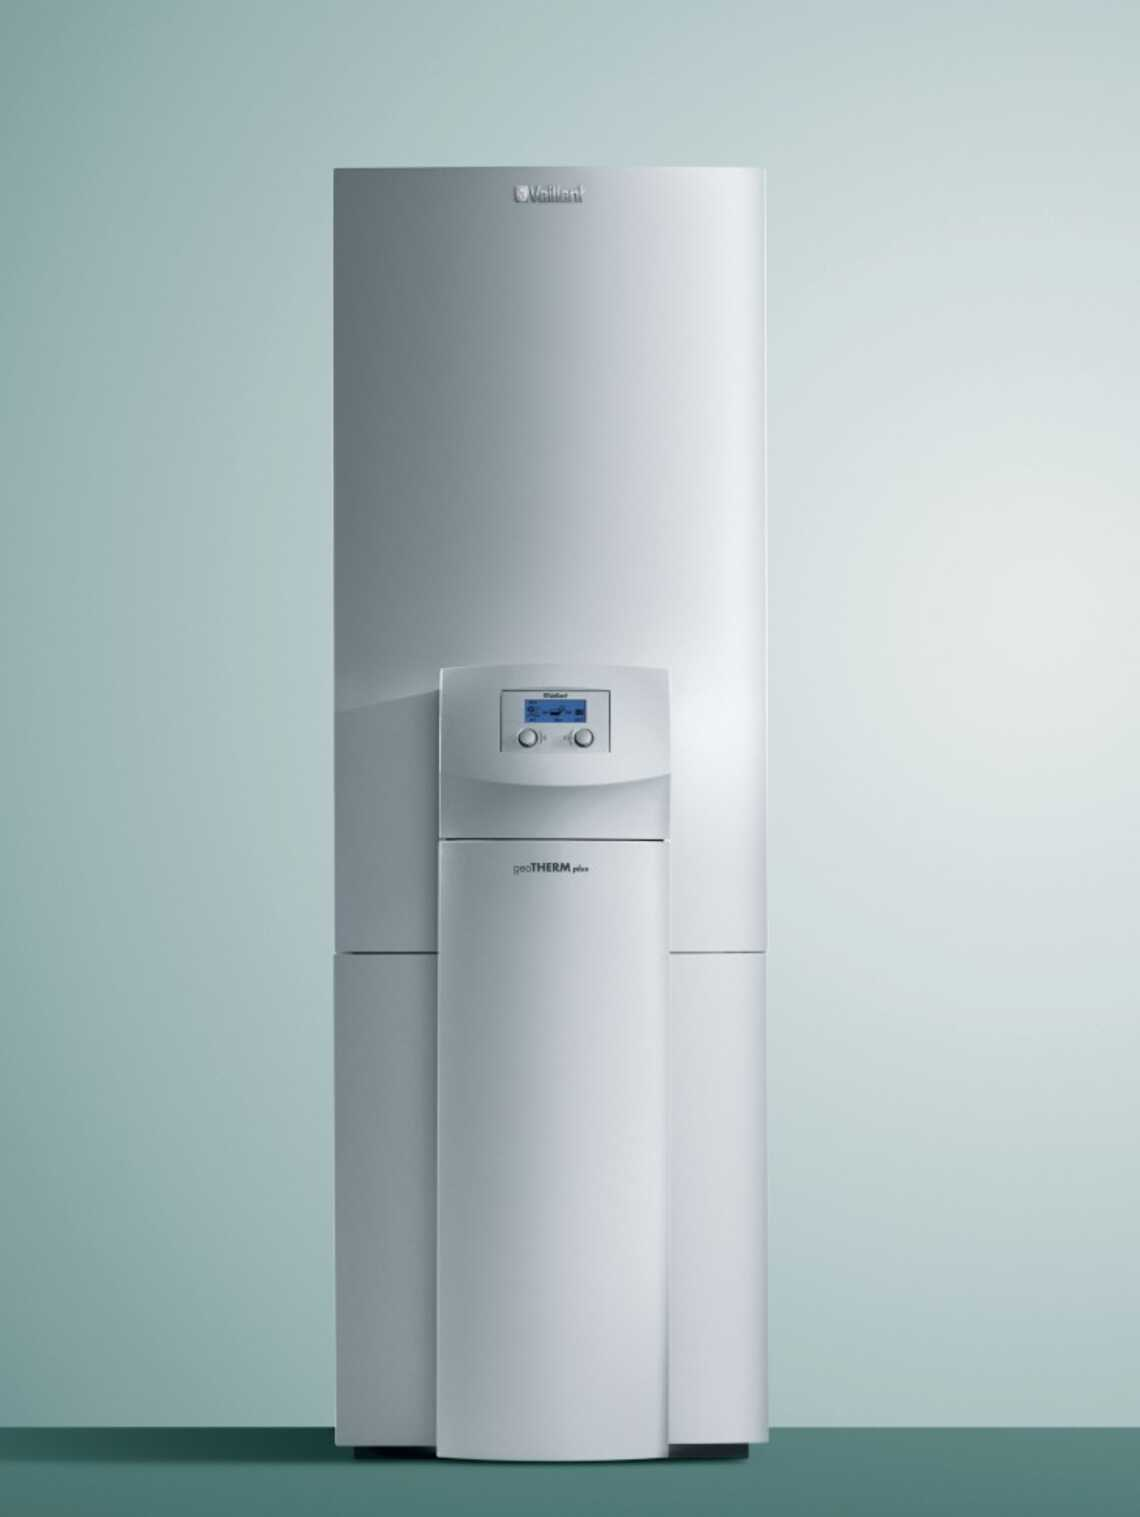 Vaillant Warmtepomp Lucht Water Warmtepomp Geotherm Plus Vwl S Vaillant